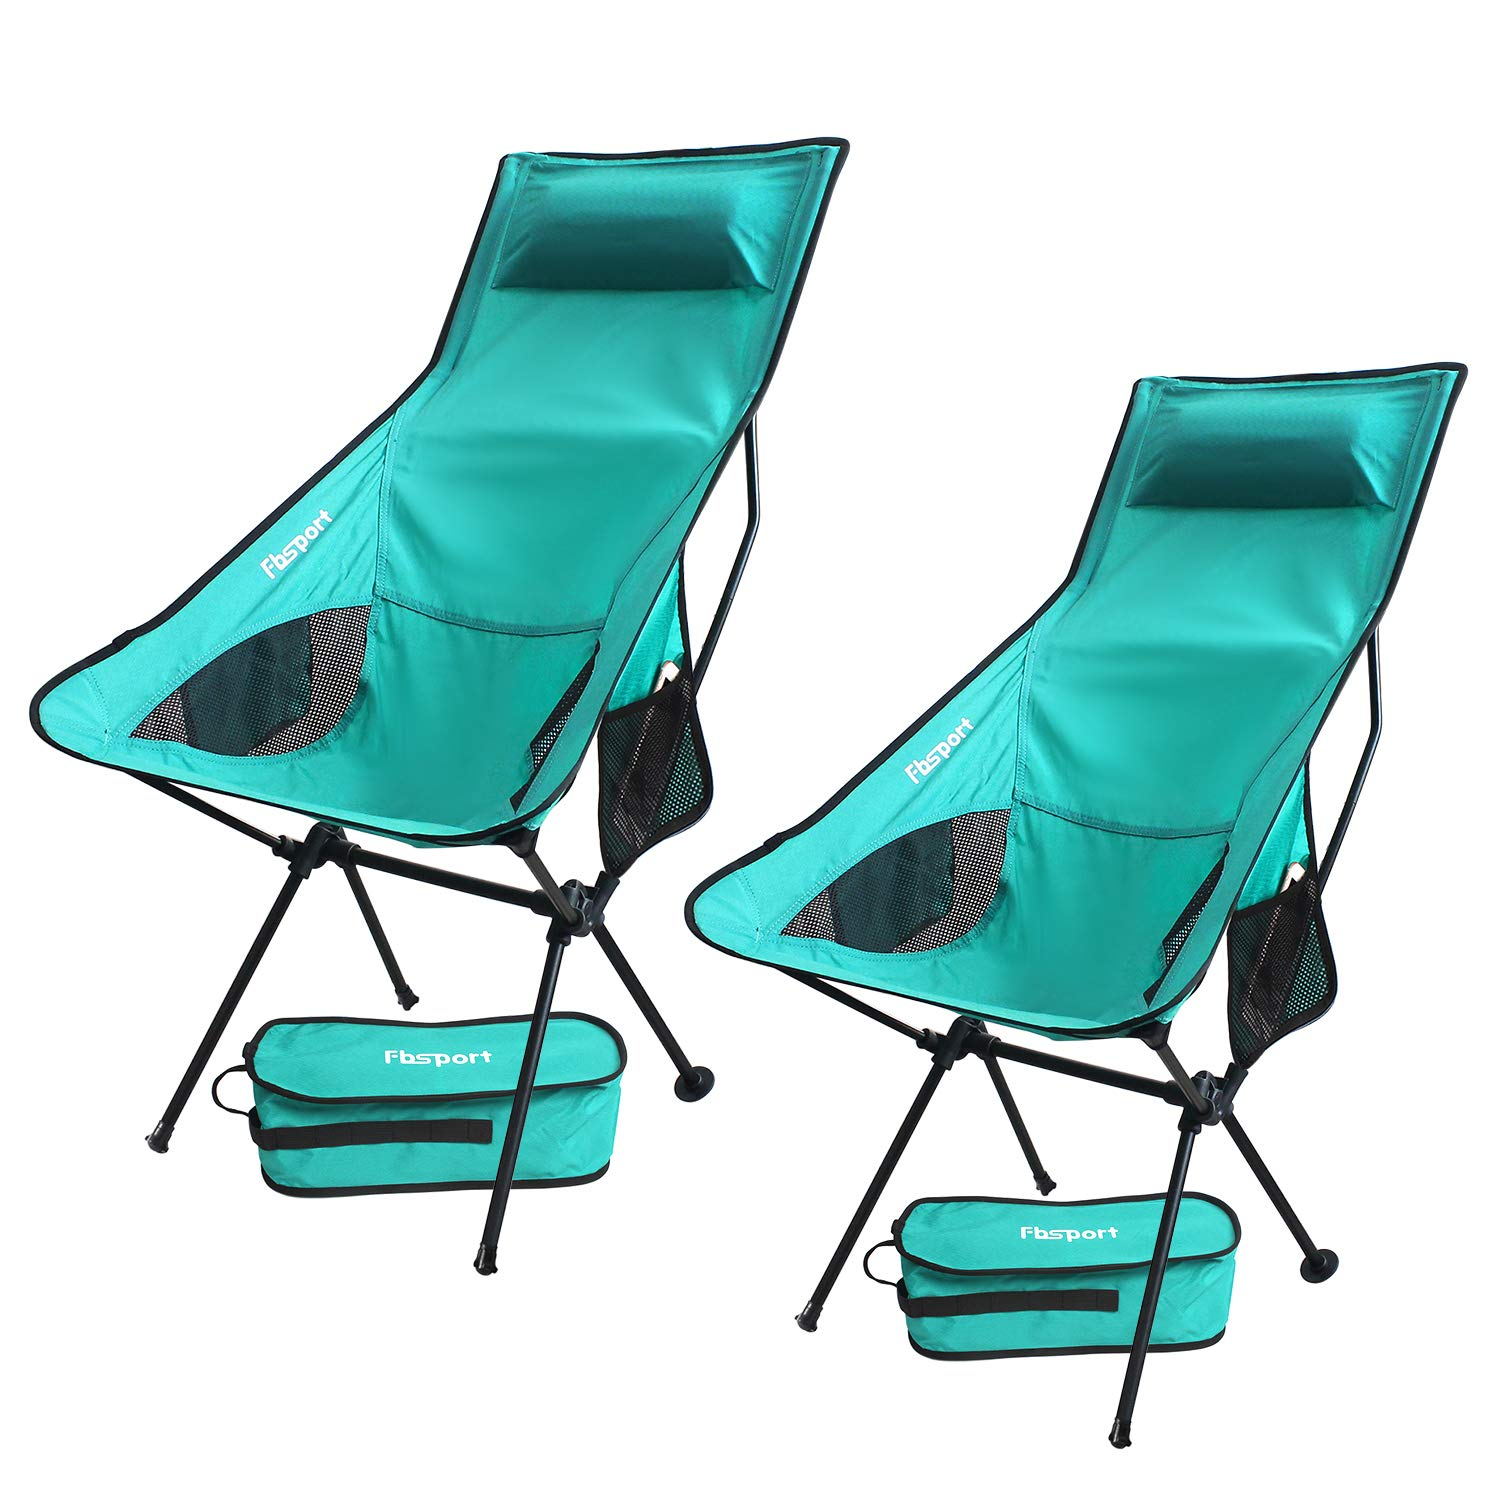 Sporting Events FBSPORT Portable Folding Chair for Camping Camping Gear Accessory and Outdoor Folding Chair Beach Festivals